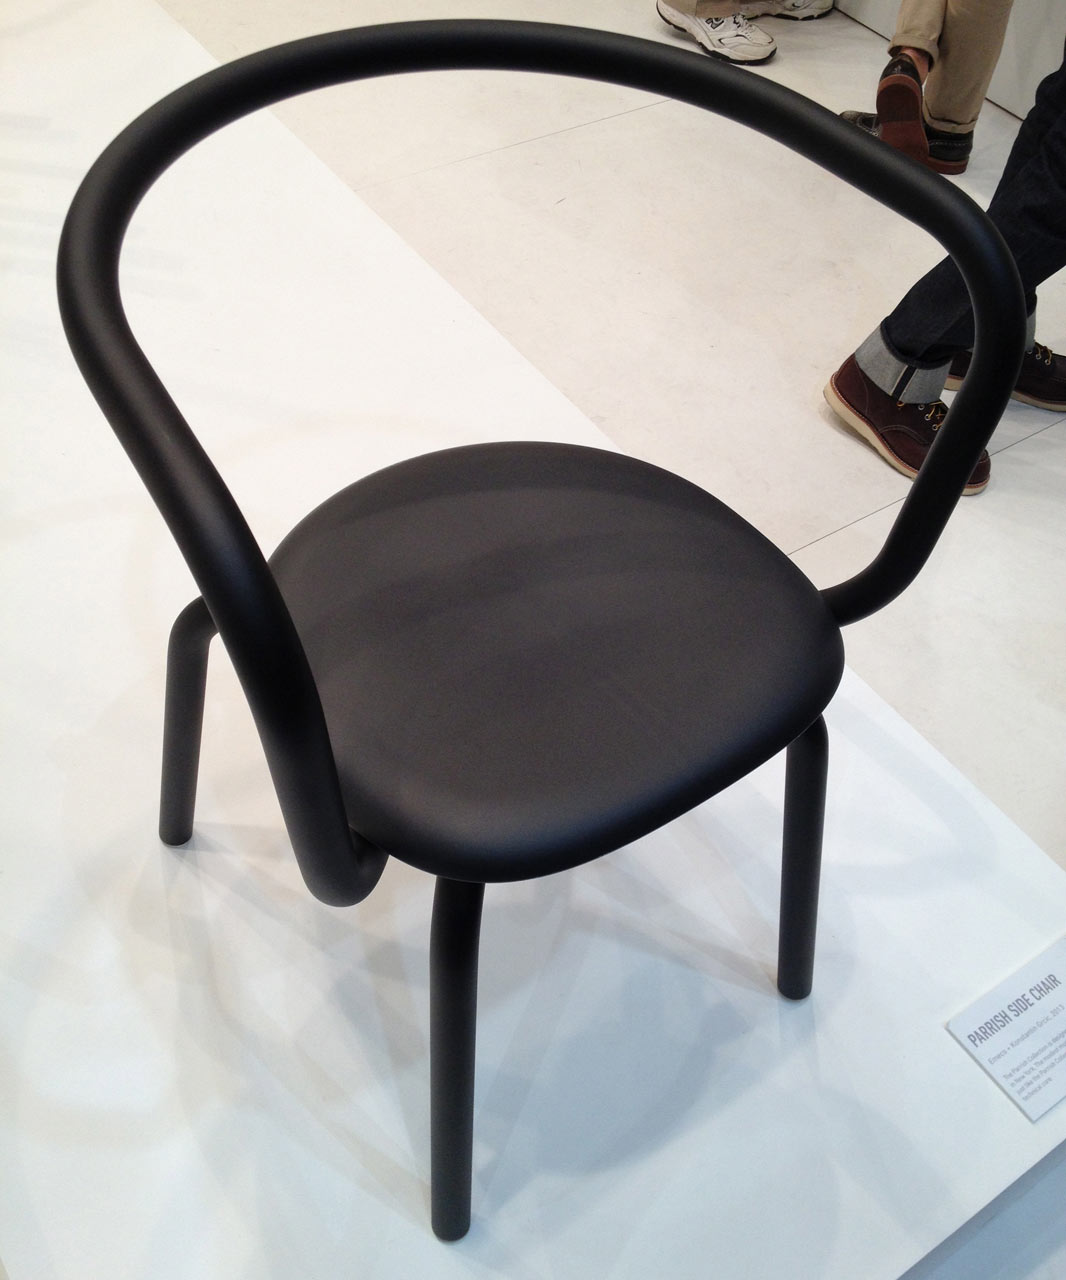 parrish-emeco-chair-grcic